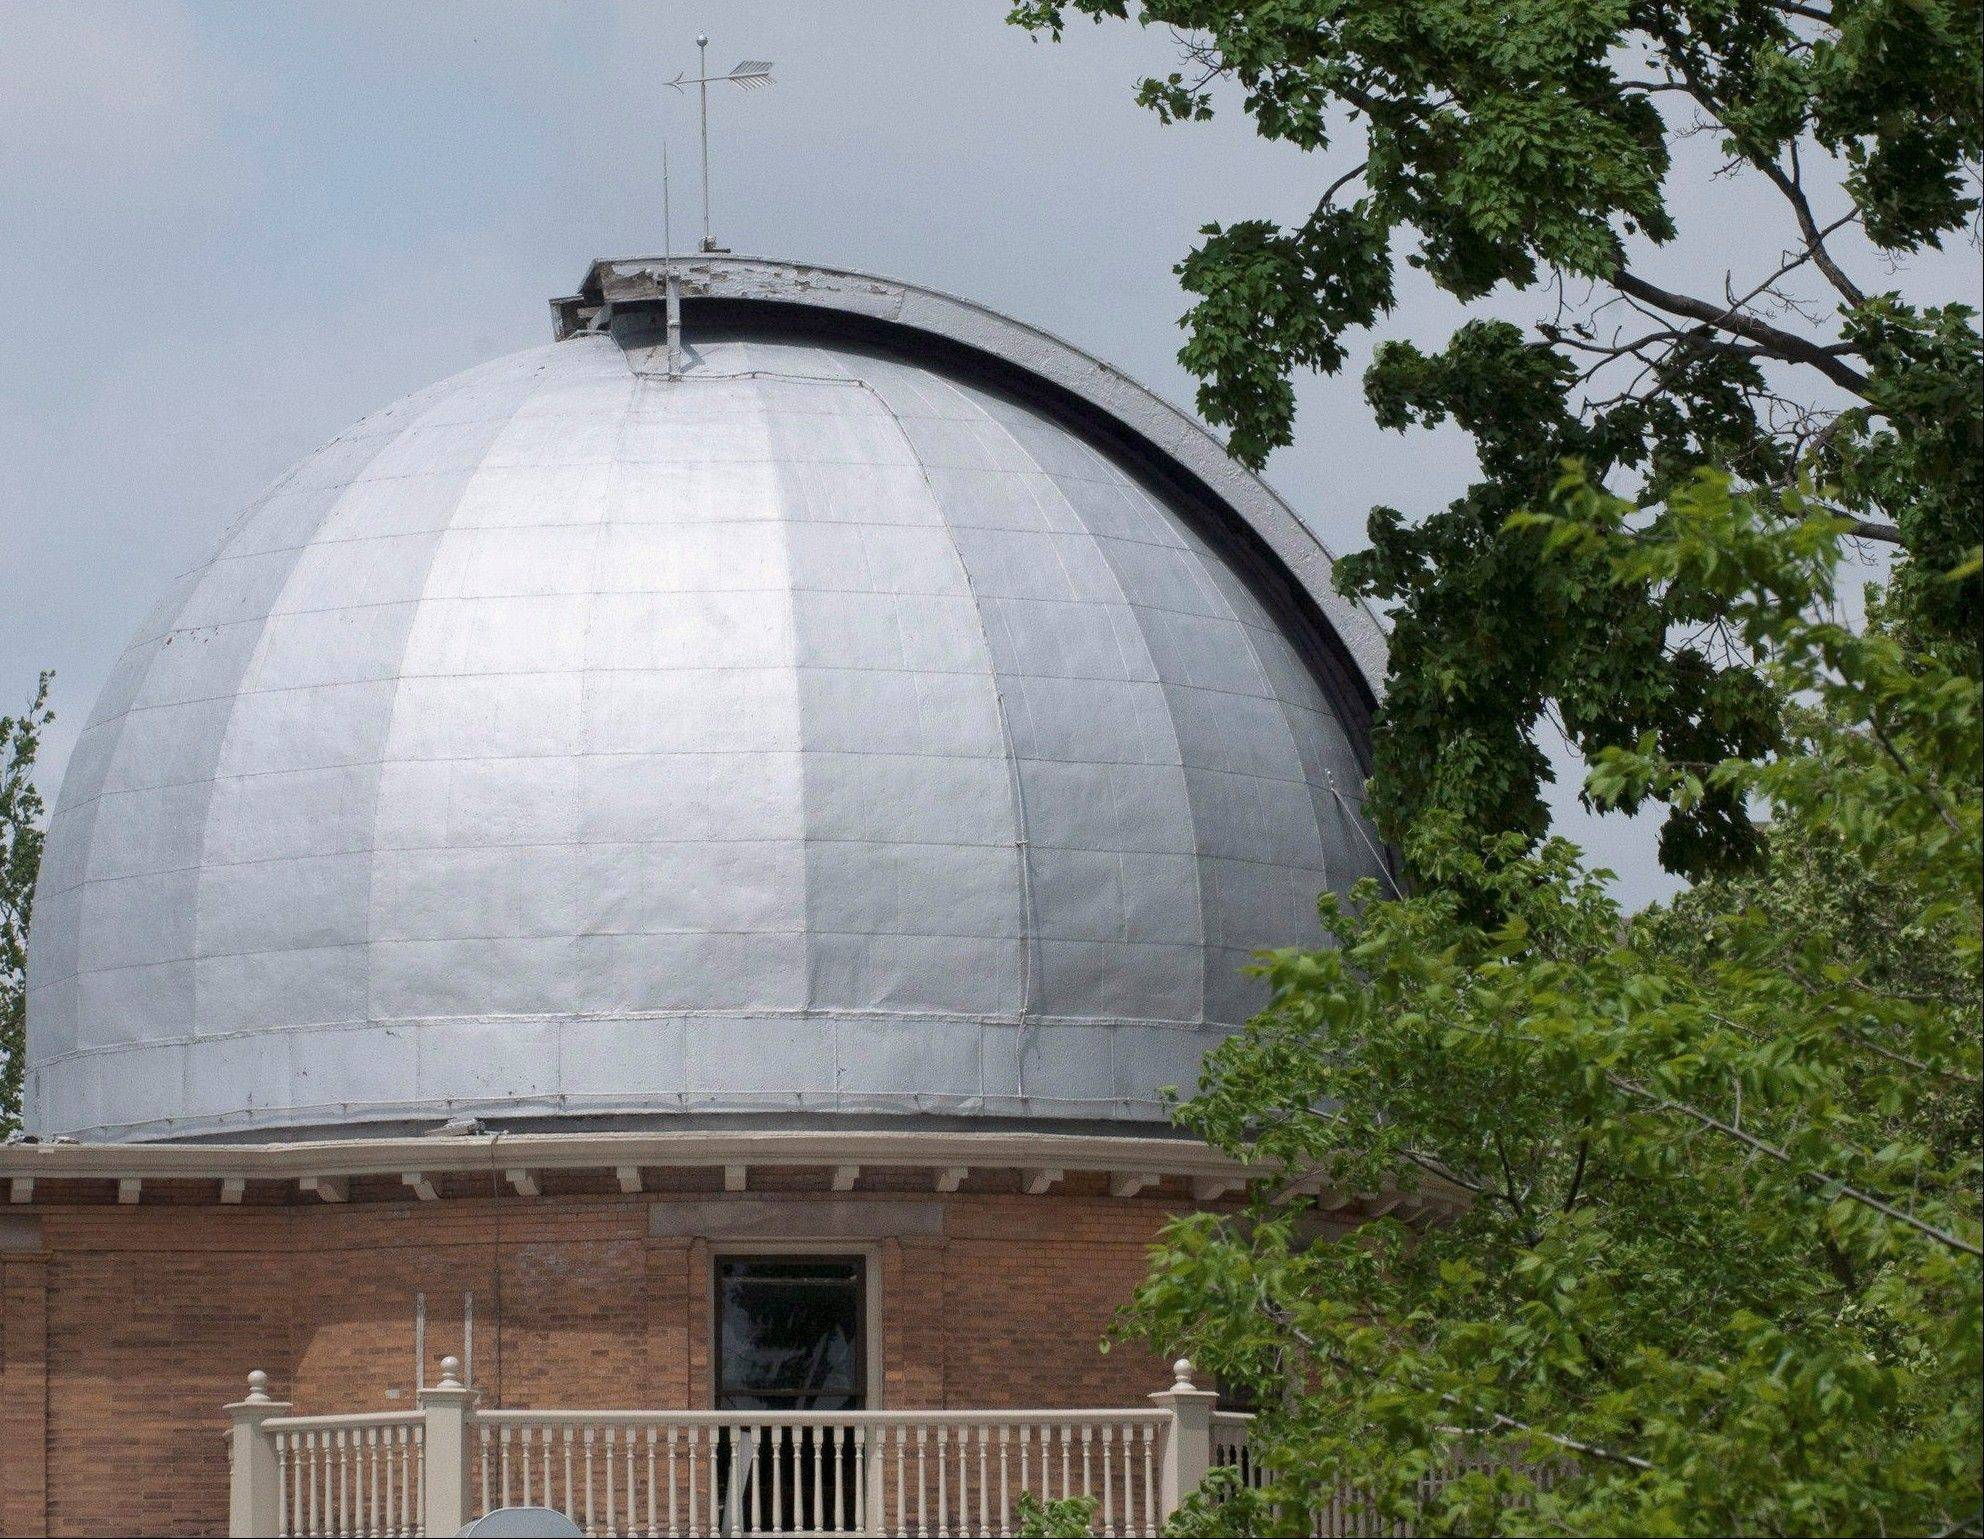 The University of Illinois observatory is a National Historic Landmark because of pioneering work done there in the early 1900s by astronomer Joel Stebbins to record the brightness of distant stars.